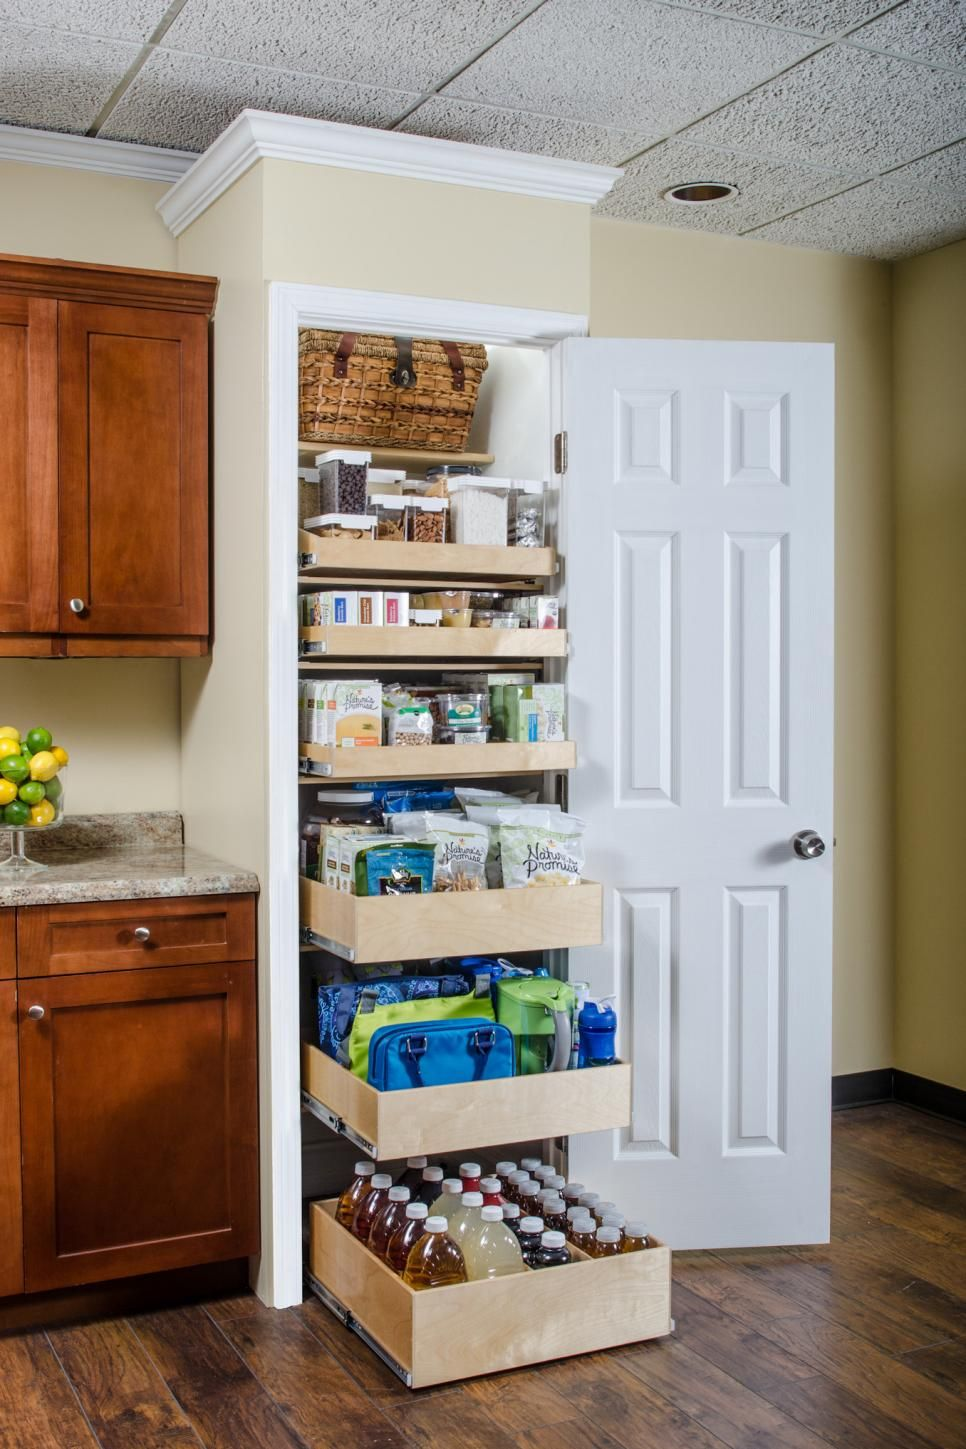 20 Best Pantry Organizers